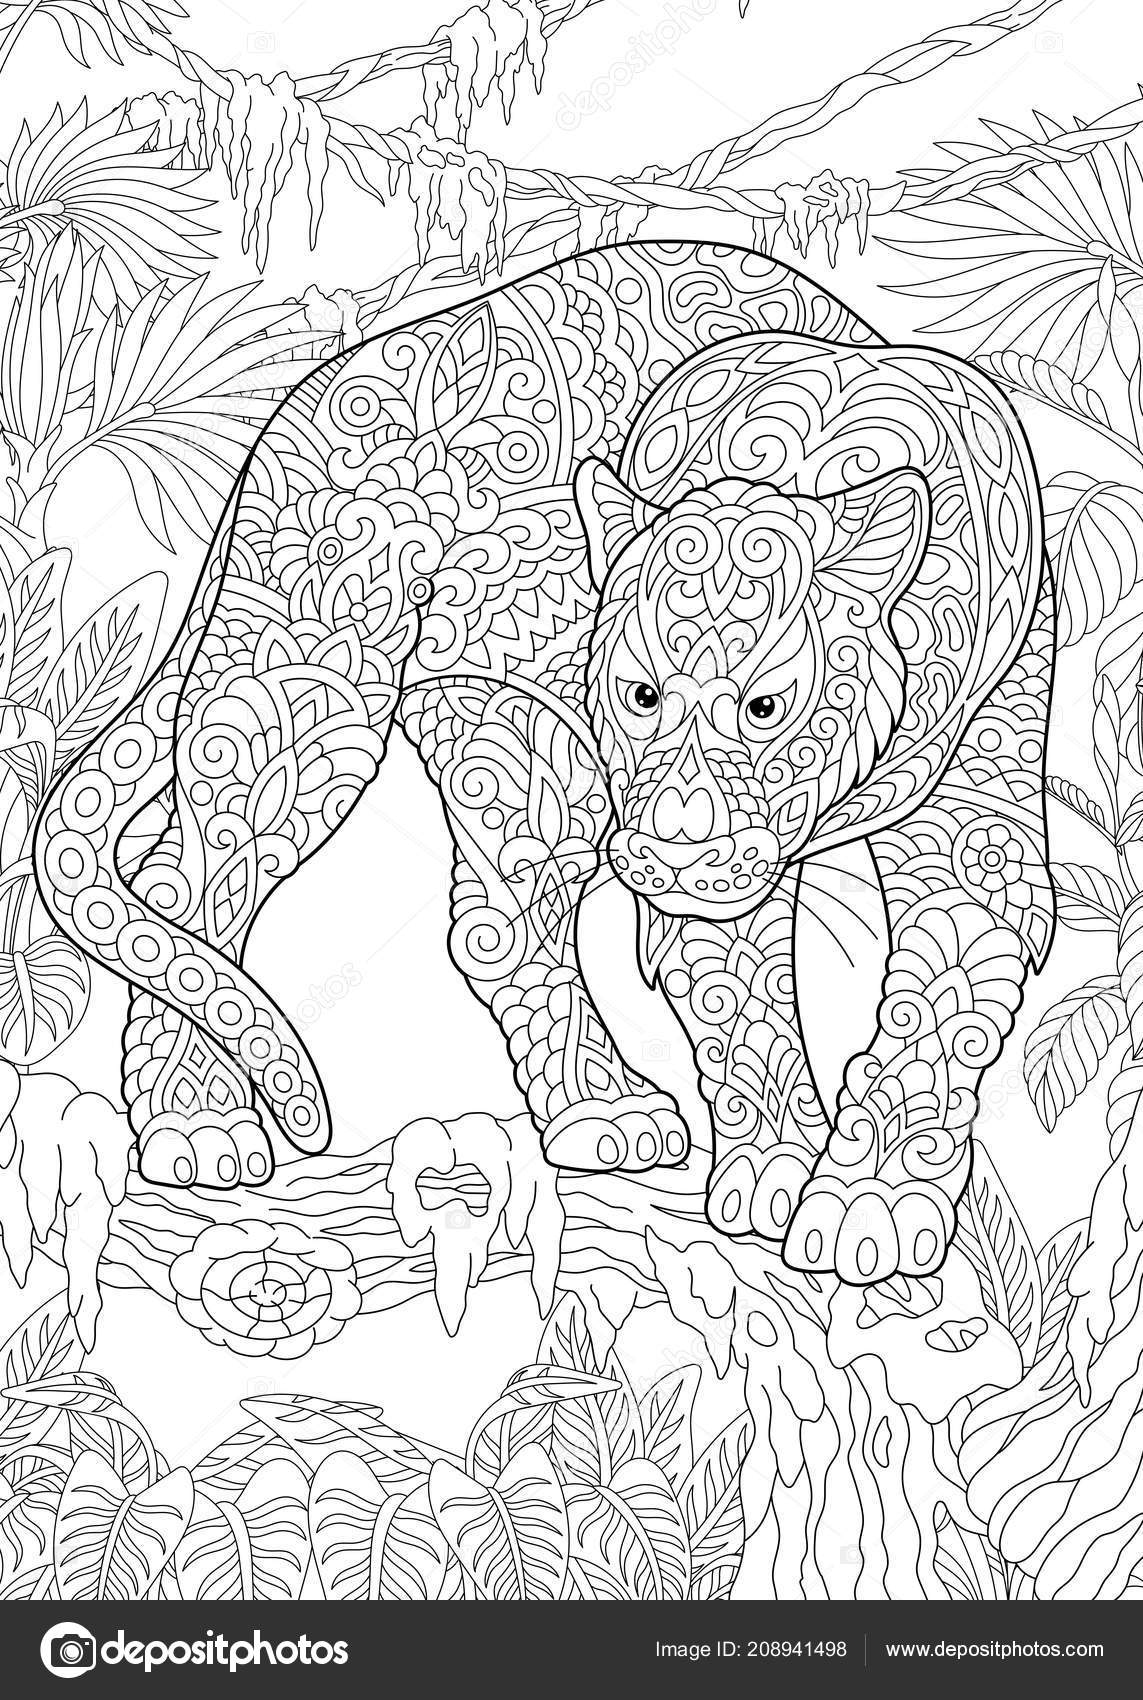 Coloriage De Black Panther.Coloriage Livre Coloriage Photo Coloration Avec Black